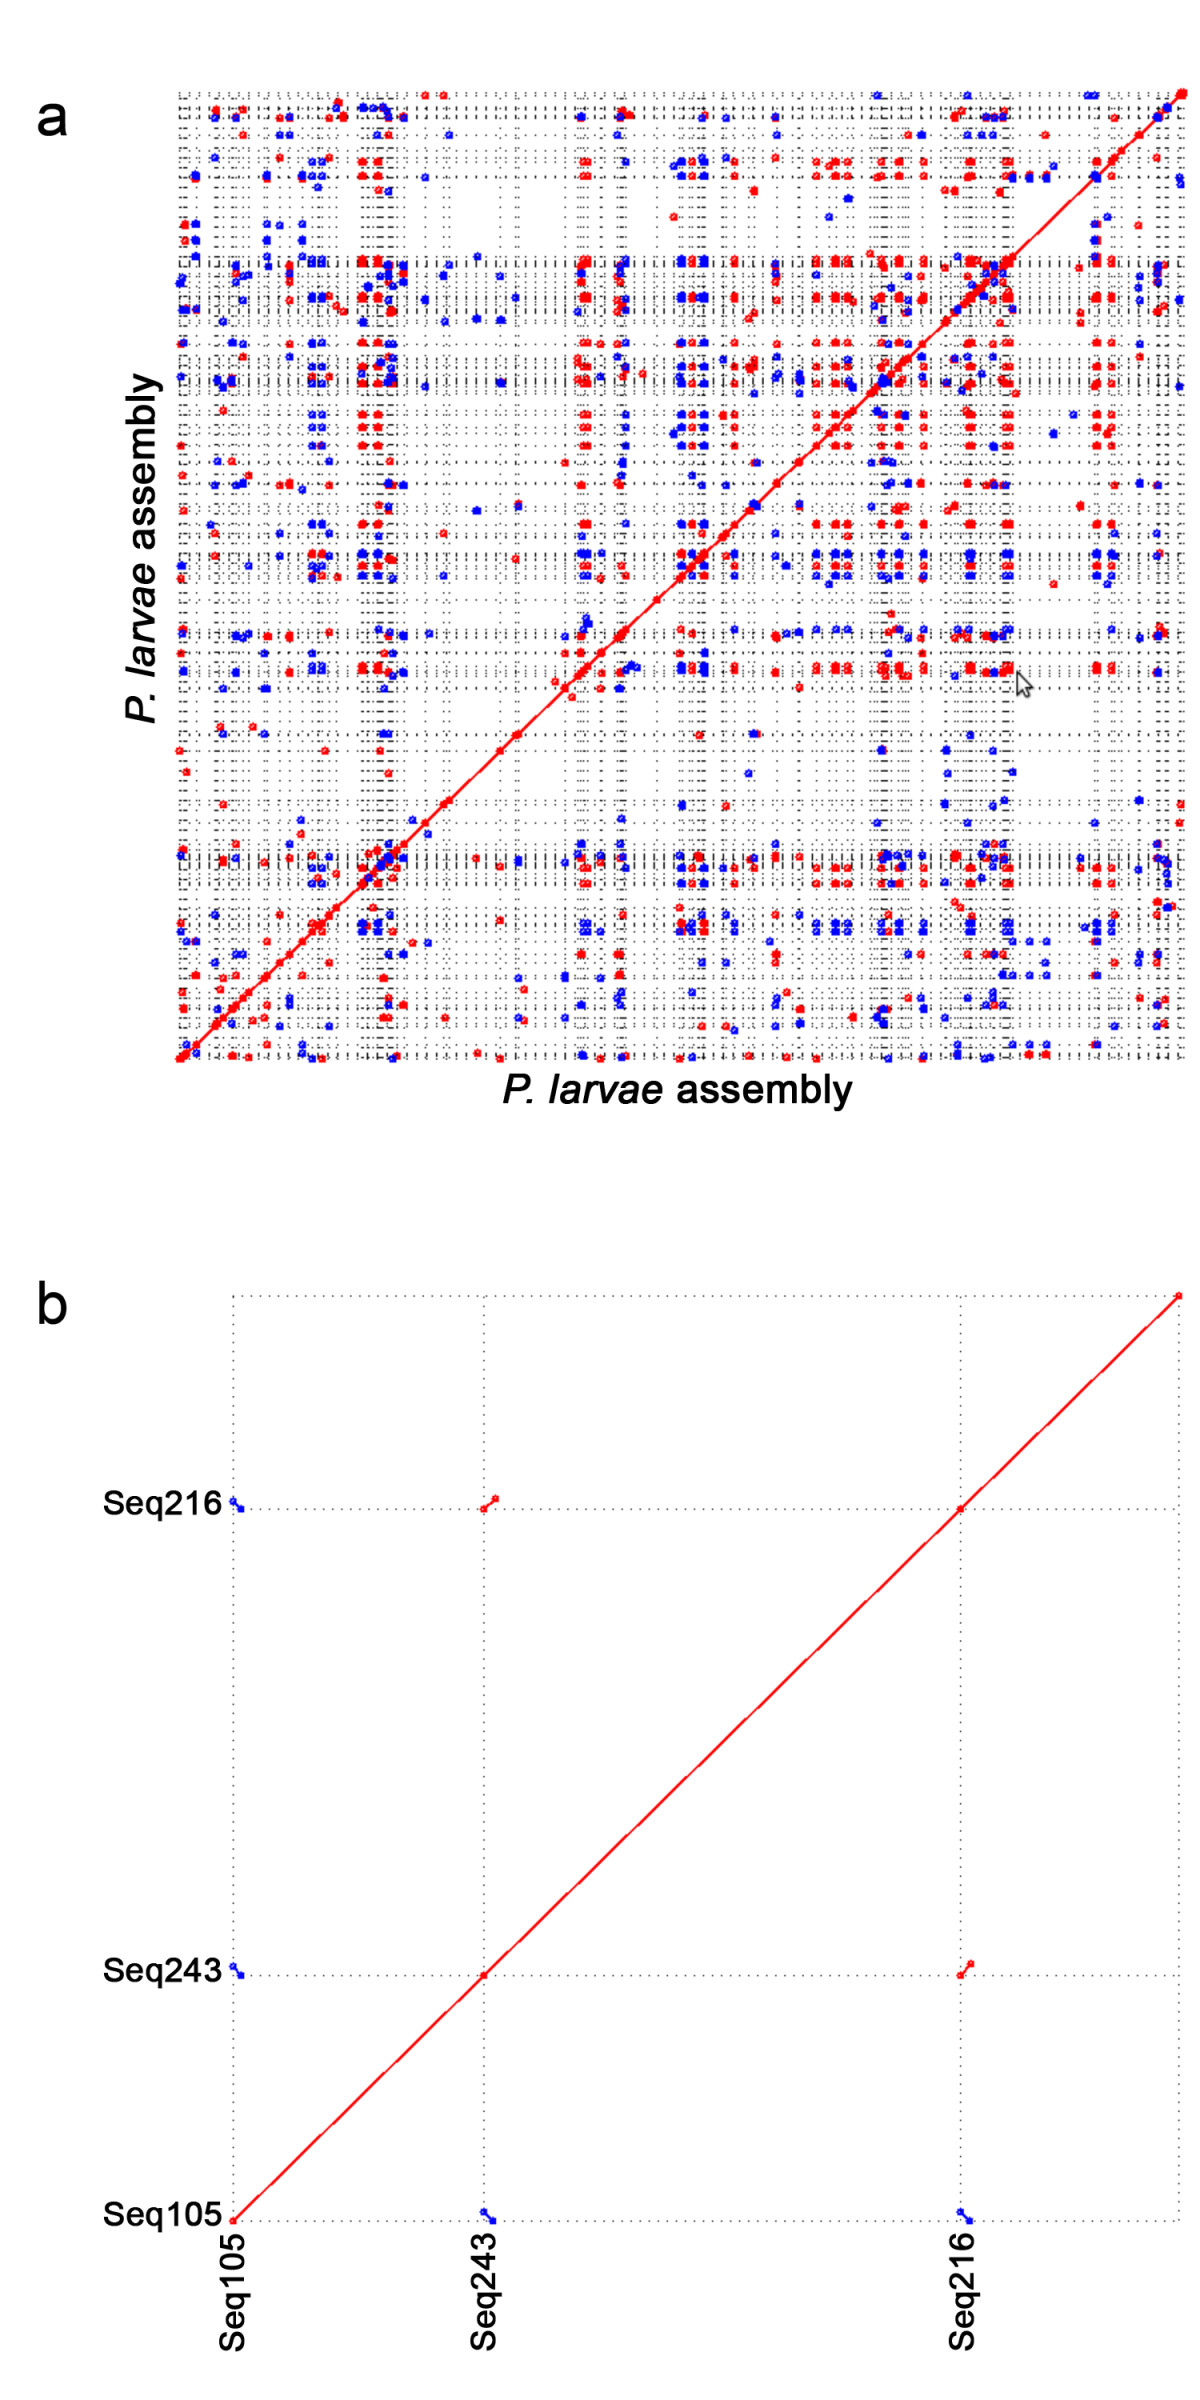 https://static-content.springer.com/image/art%3A10.1186%2F1471-2164-12-450/MediaObjects/12864_2011_Article_3602_Fig1_HTML.jpg